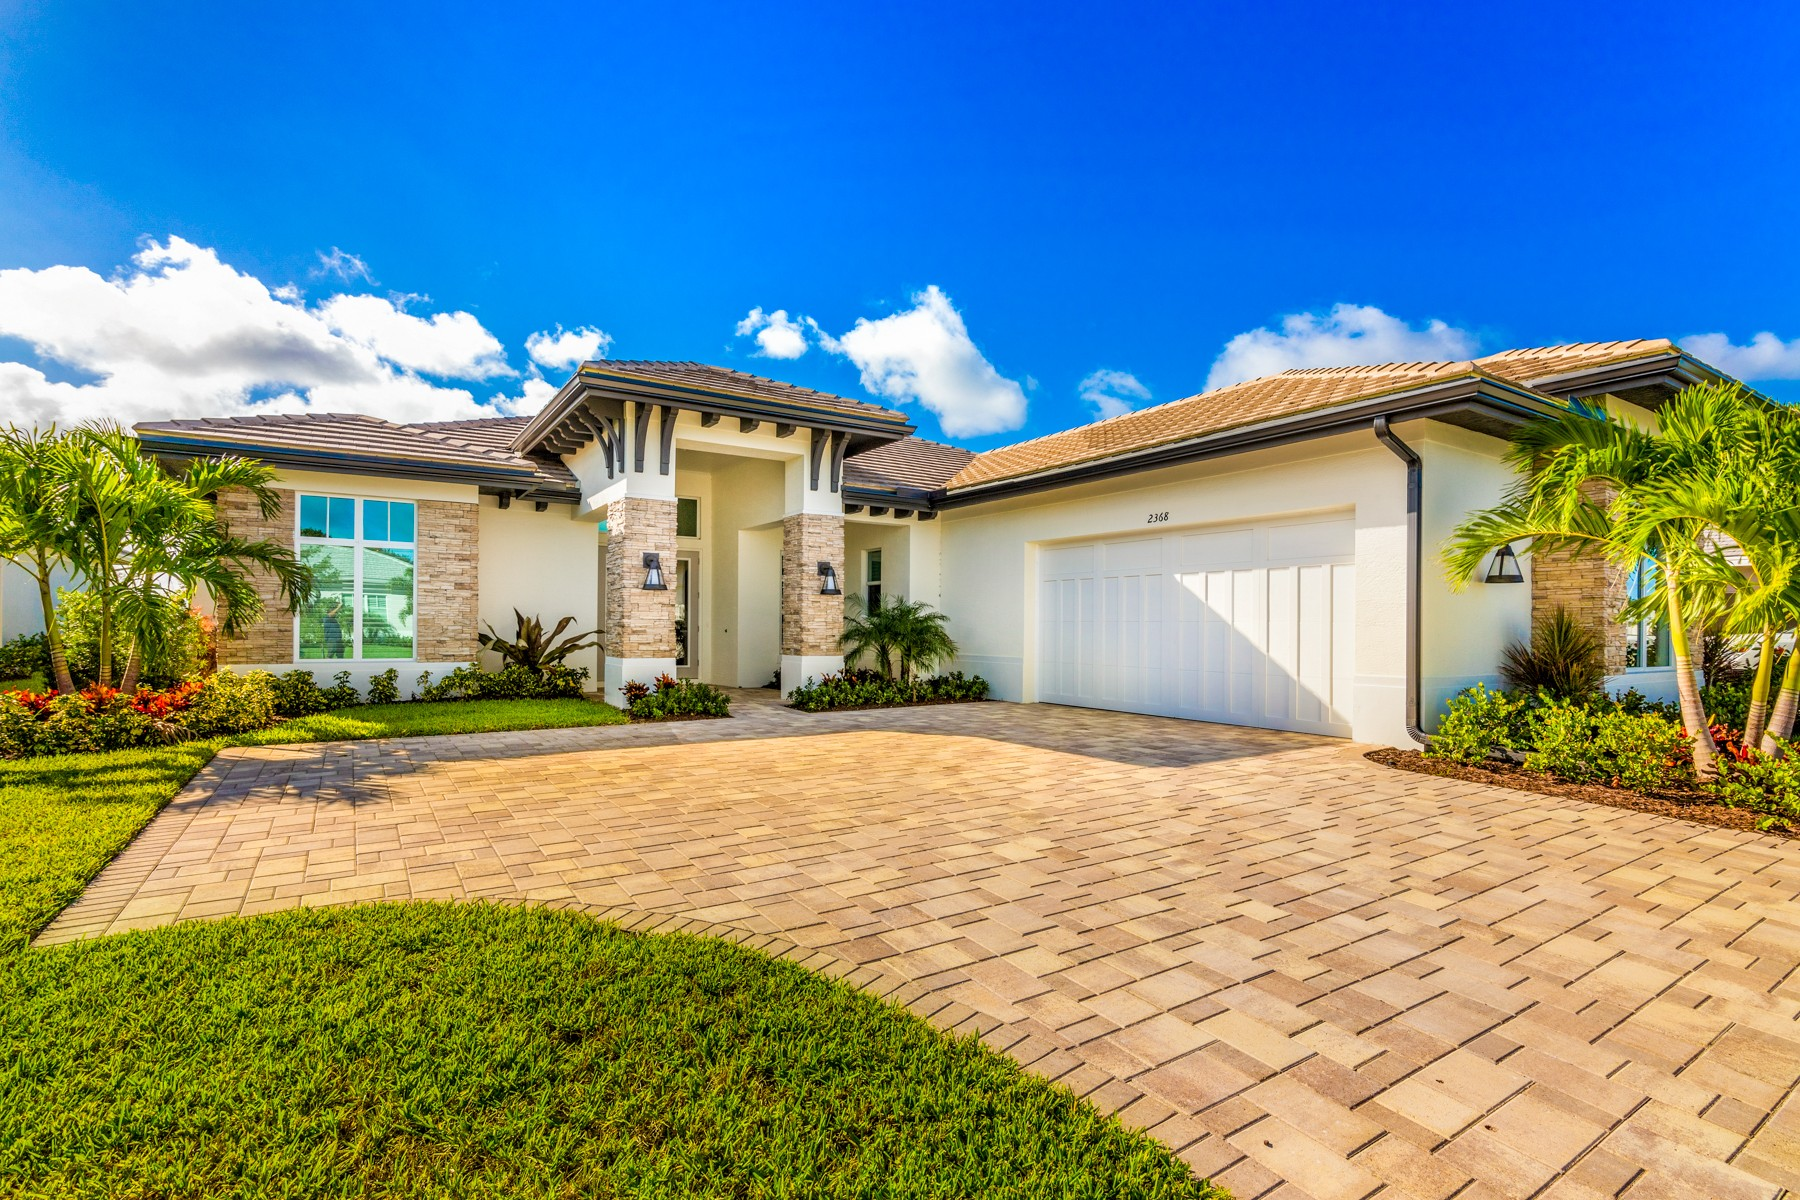 Single Family Homes for Sale at Resort Living in Grand Harbor 2368 Grand Harbor Reserve Square Vero Beach, Florida 32967 United States